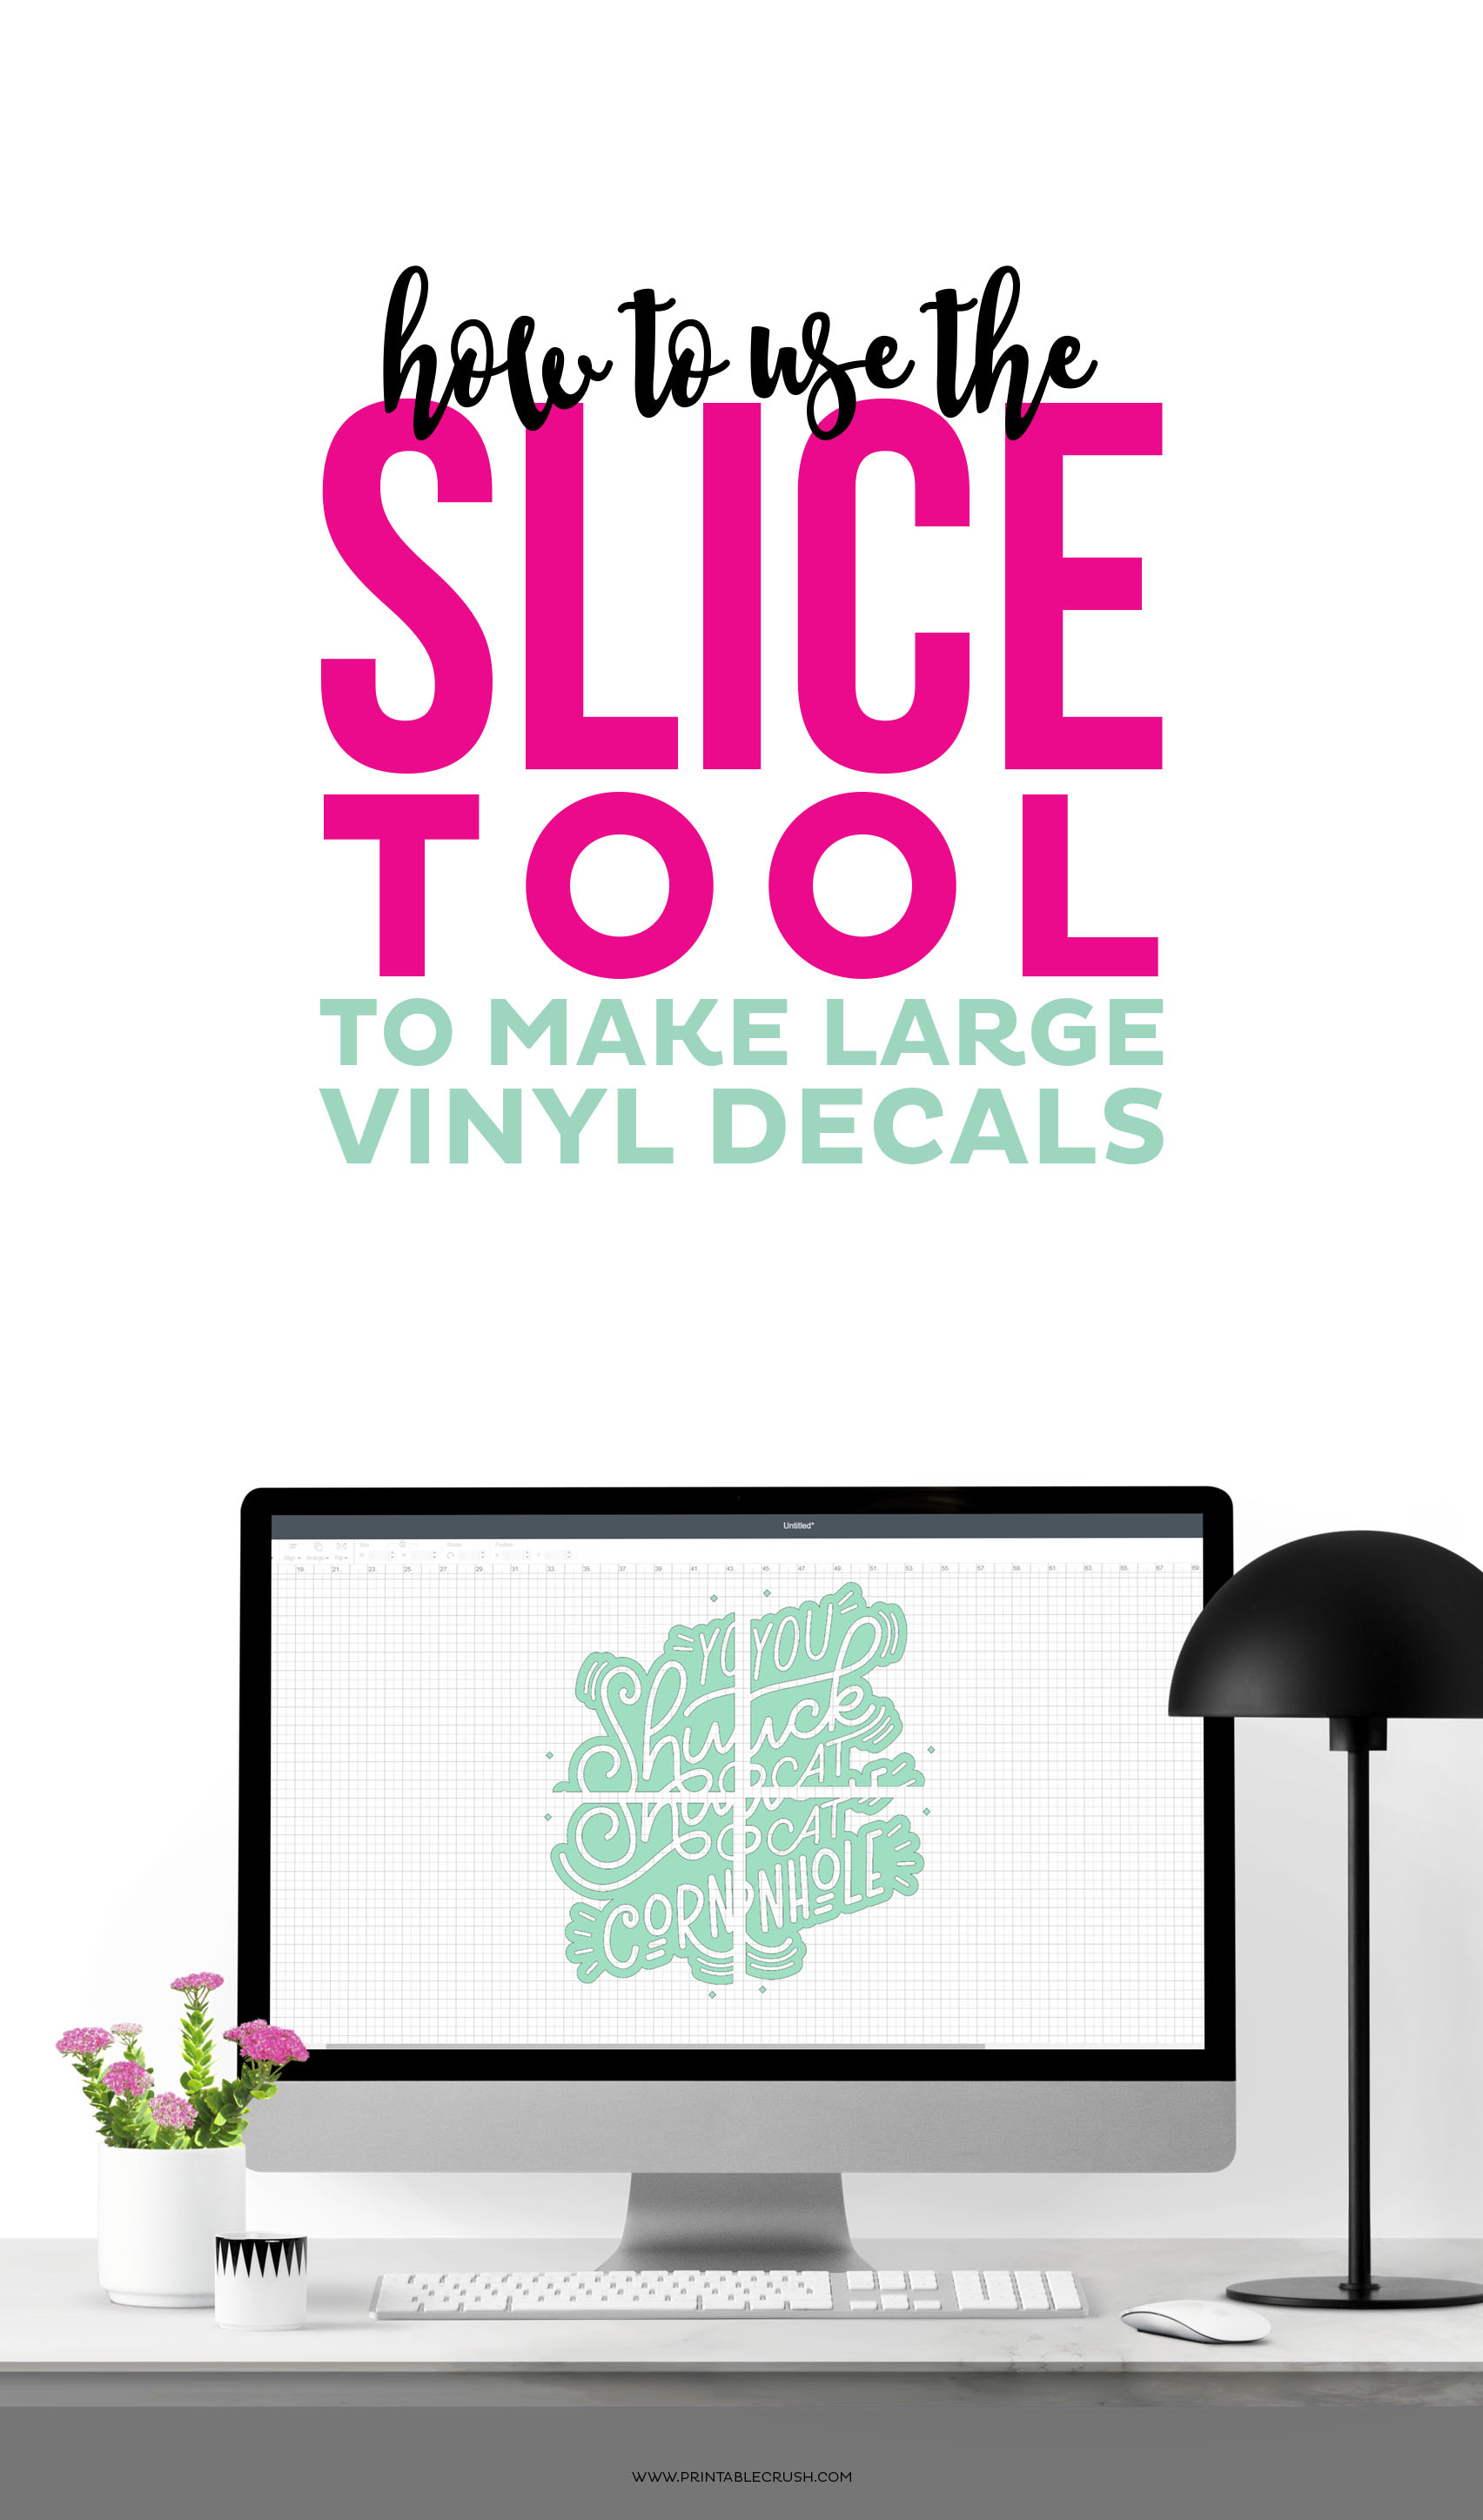 photo regarding Cricut Printable Image Too Large identify Vinyl Decals - Deliver Hefty Decals Within Cricut Design and style Location